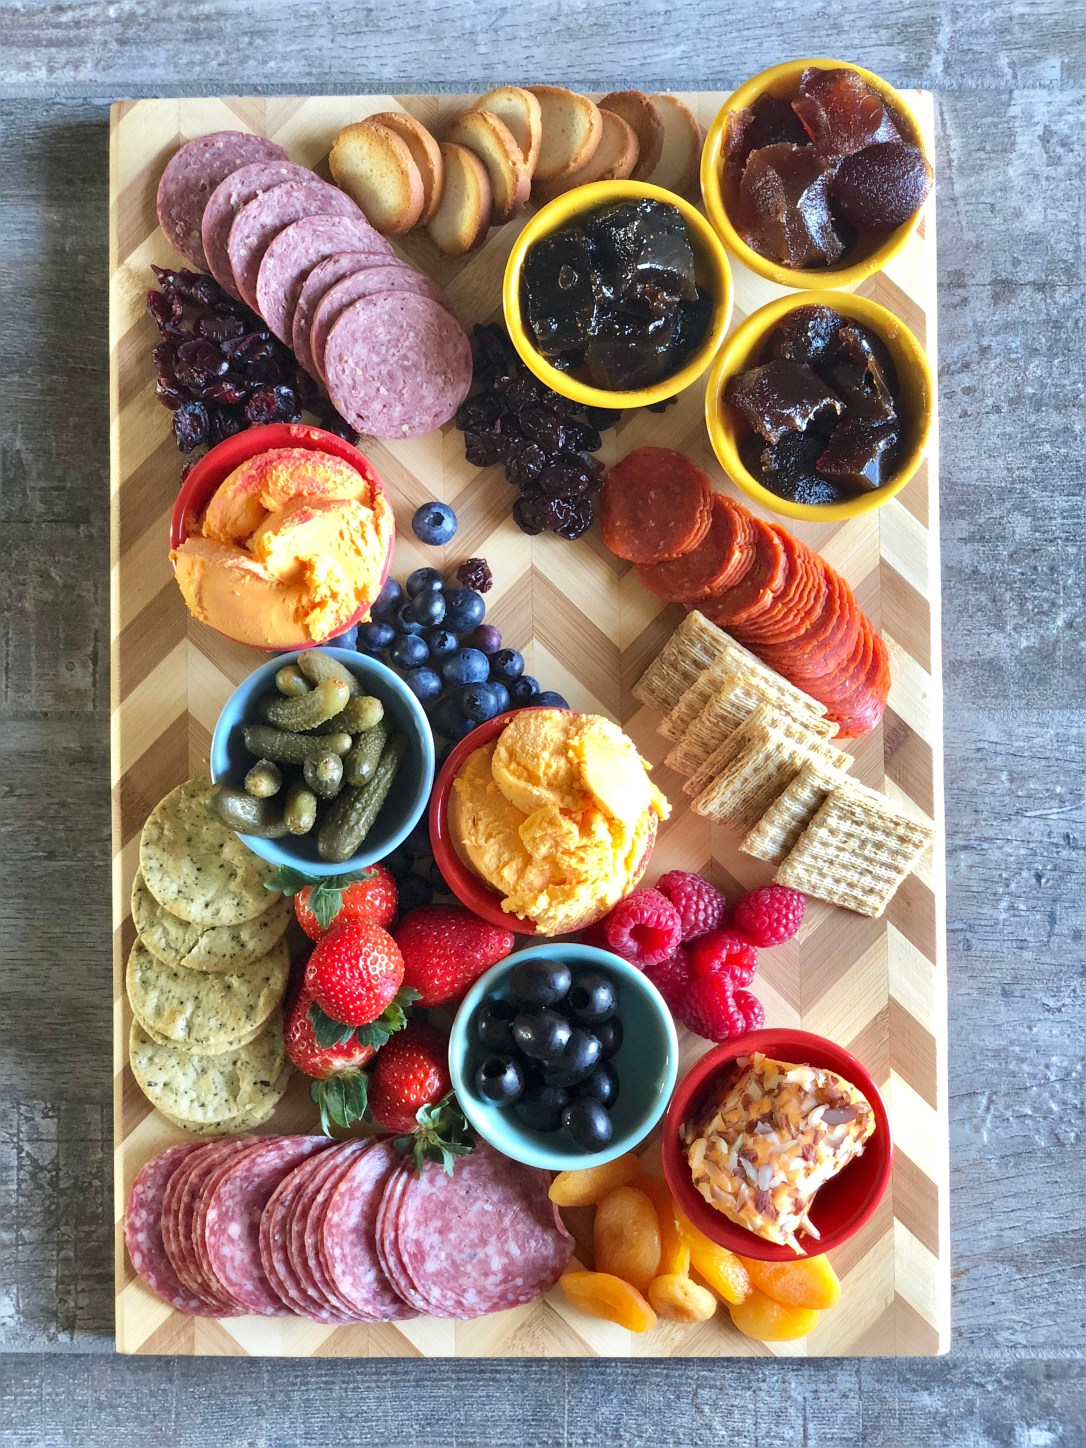 How to Make a Charcuterie and Cheese Board #ad #kaukauna100